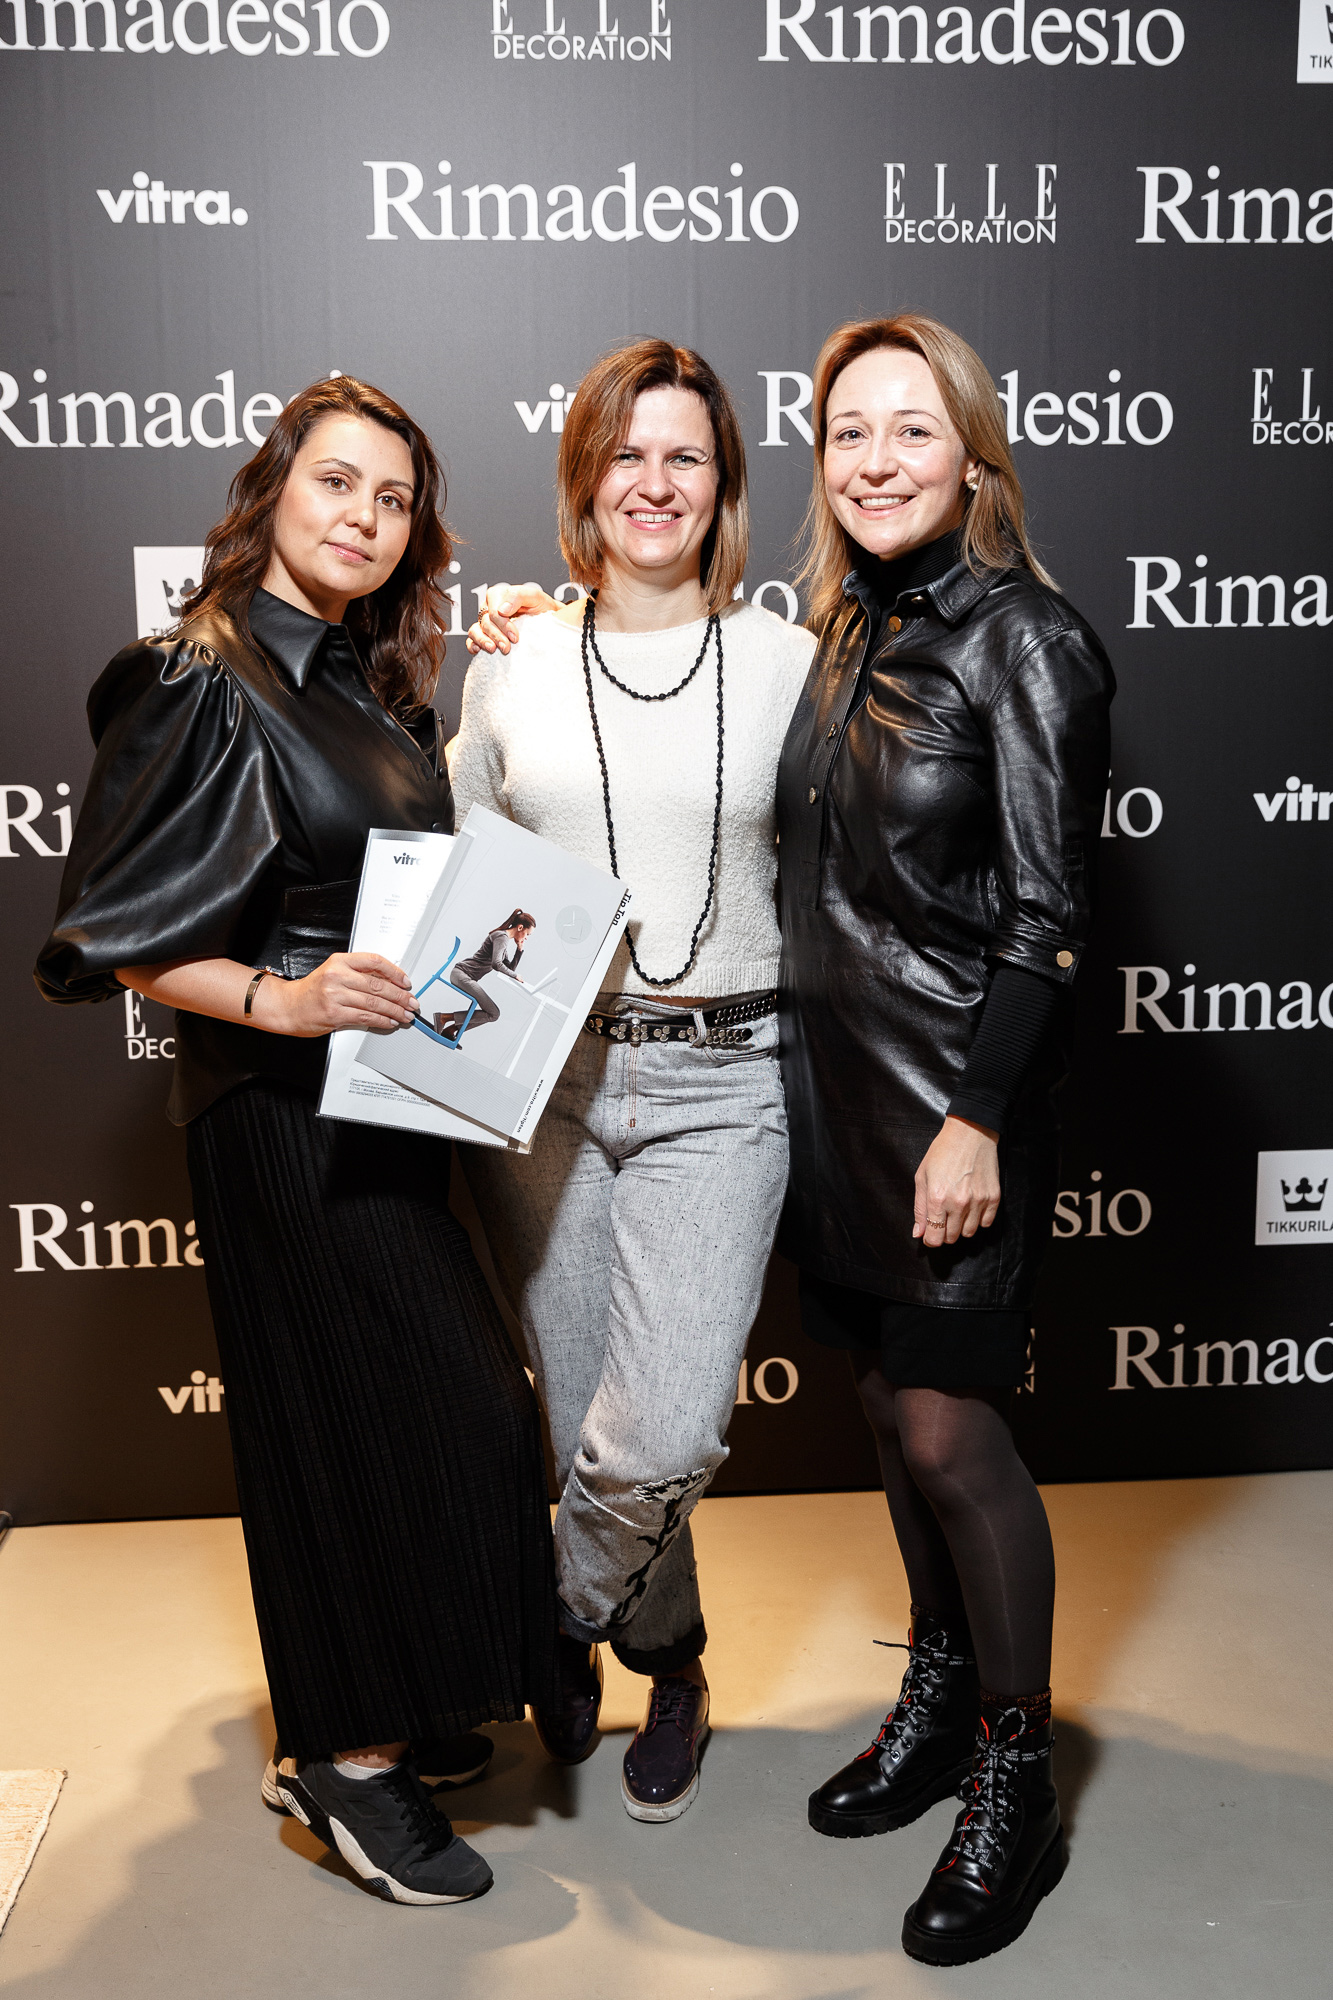 rimadesio-moscow-234